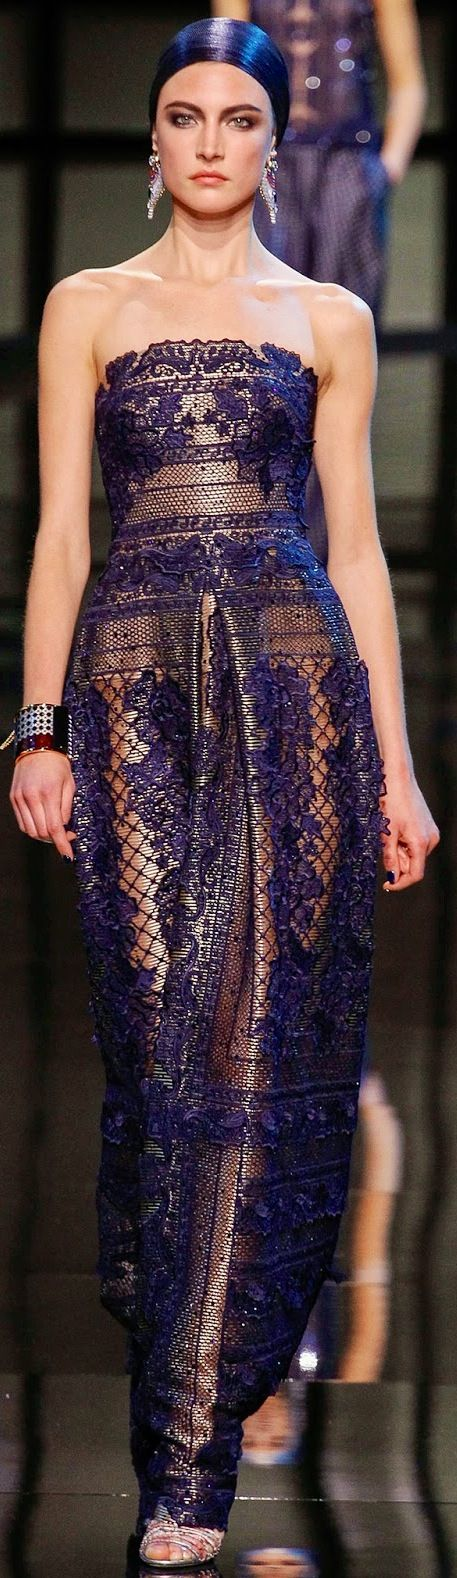 Armani privé-inspiration for songket dress, but add sleeves, perhaps with black shiny jacket